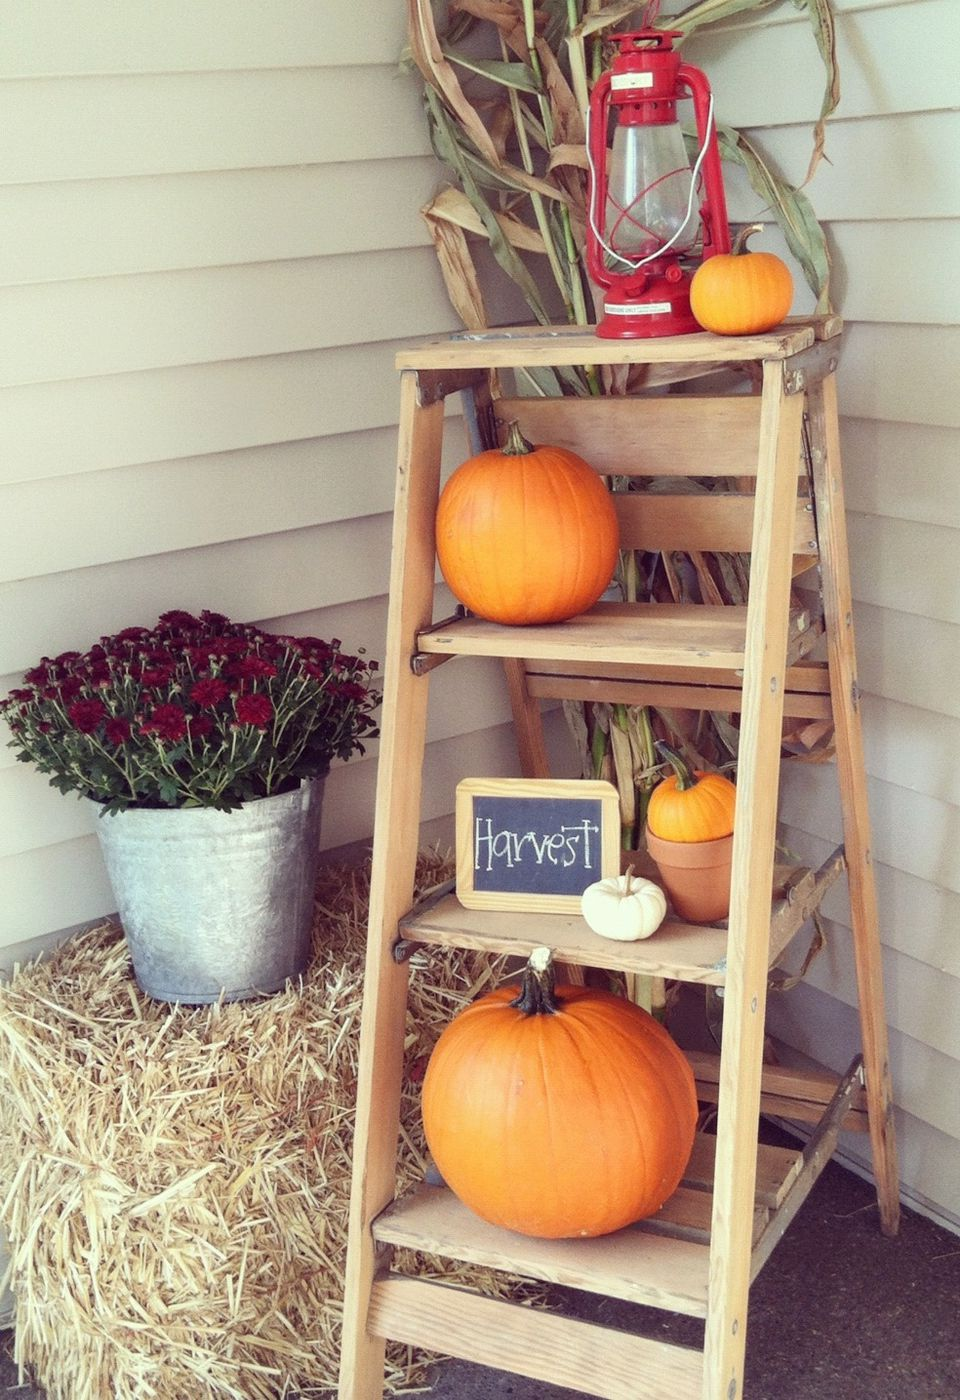 Uncategorized Fall Porch Decorating Ideas Pictures 15 cheap and cute fall front porch decorating ideas ladder door decor rustic pumpkin display